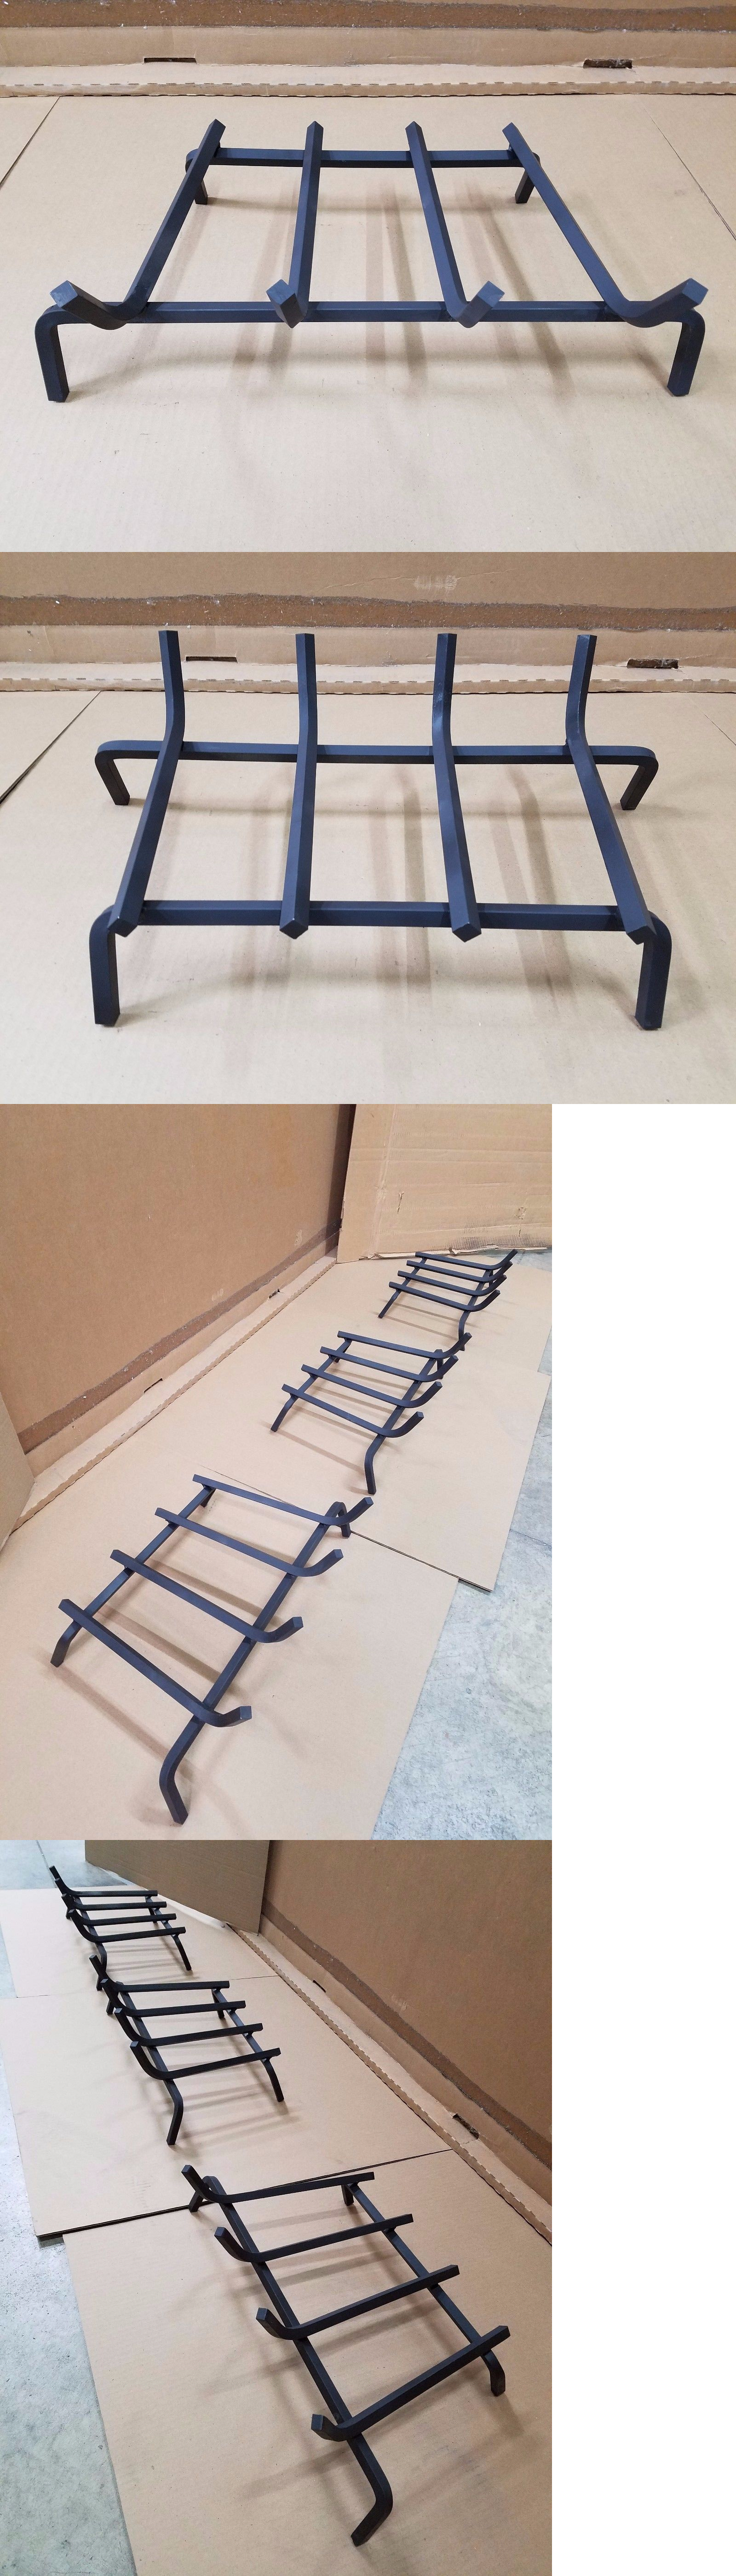 andirons grates and firedogs 79648 21 tapered zero clearance